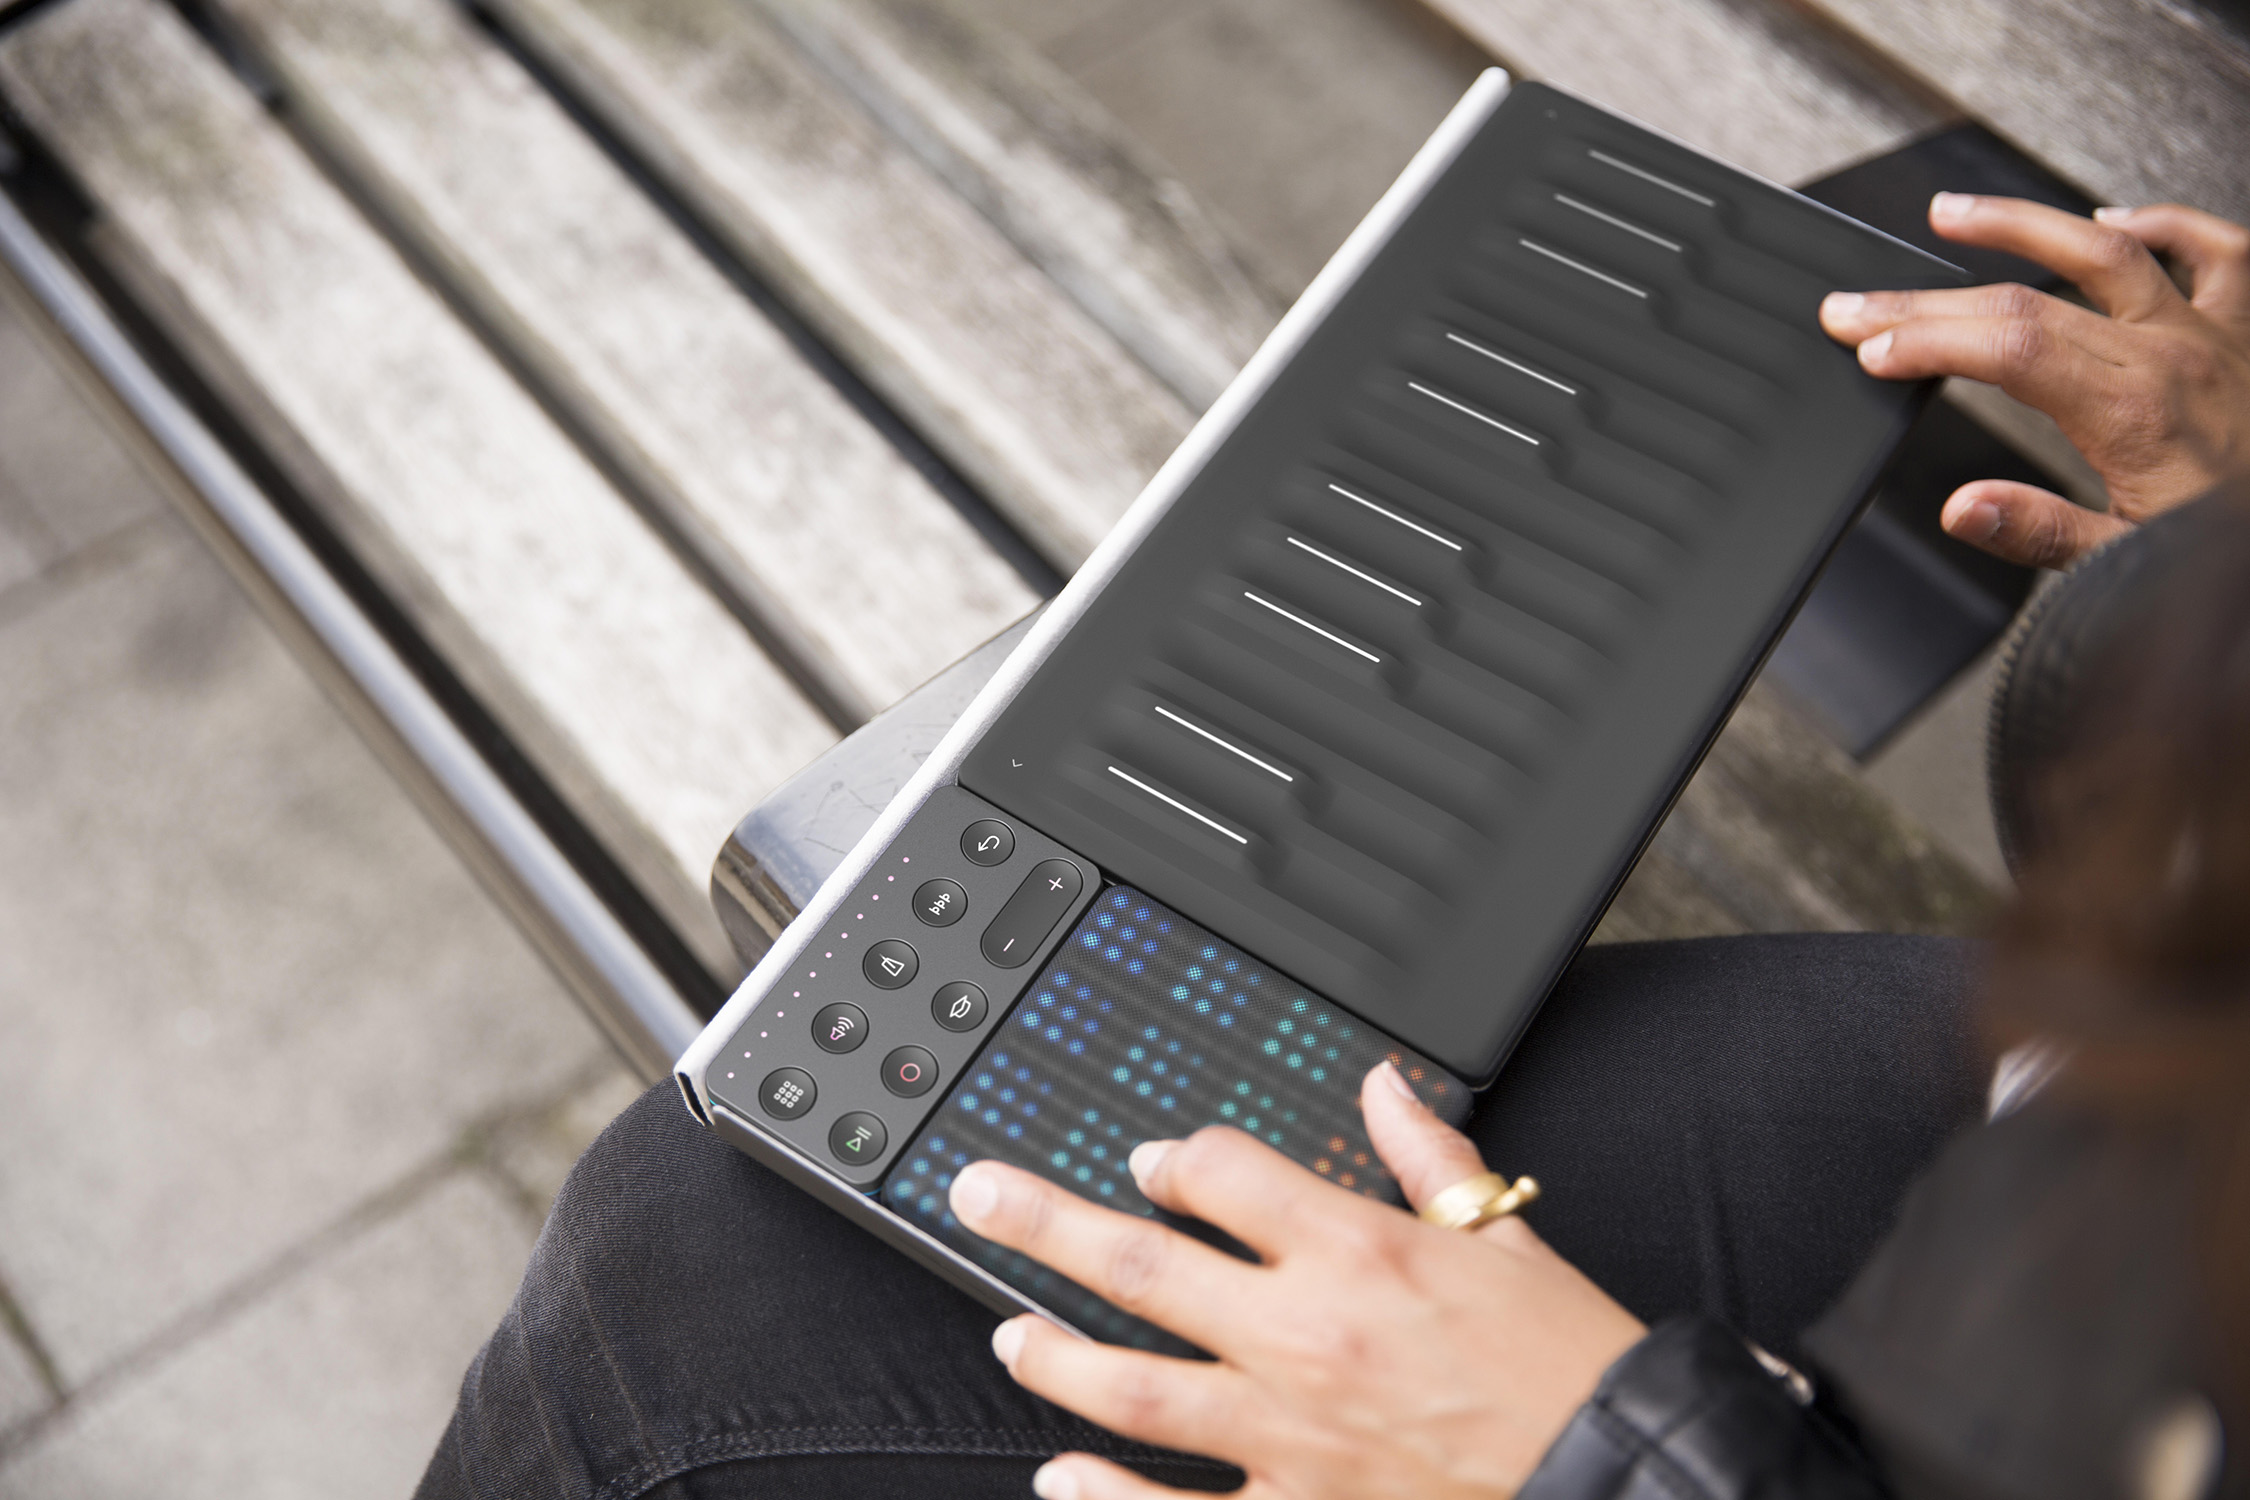 ROLI Songmaker Kit – Paket med Seaboard Block, Lightpad Block och Loop Block